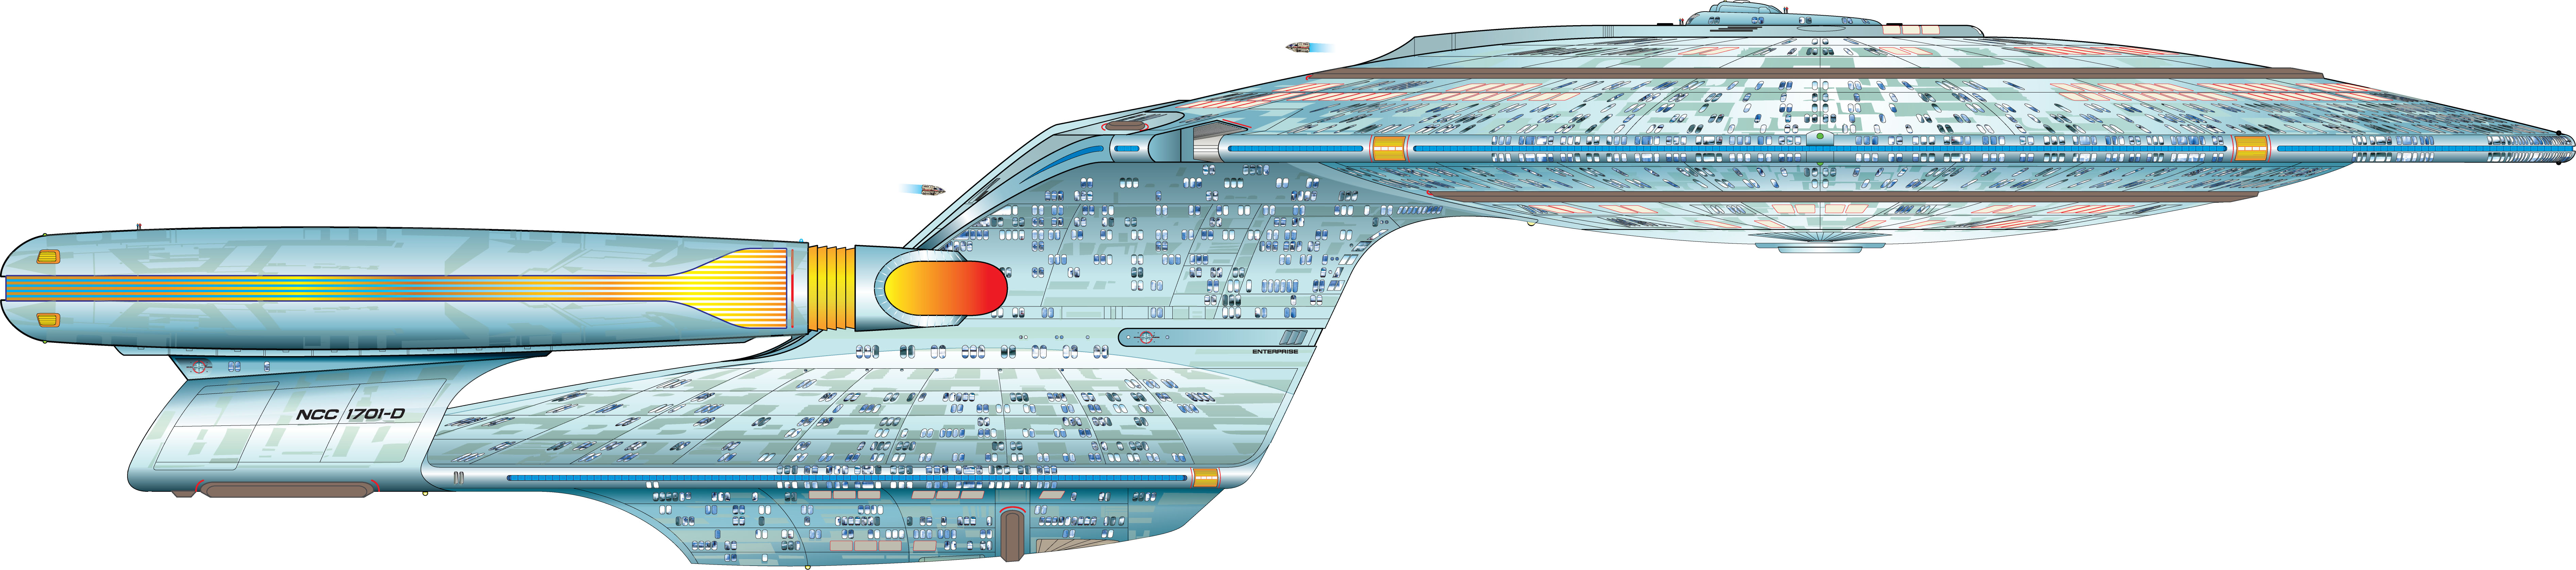 Uss enterprise ncc 1701 d galaxy class saucer separation r flickr - Uss Enterprise Ncc 1701 D Galaxy Class Saucer Separation R Flickr Starfleet Intelligence Primary Hull Download